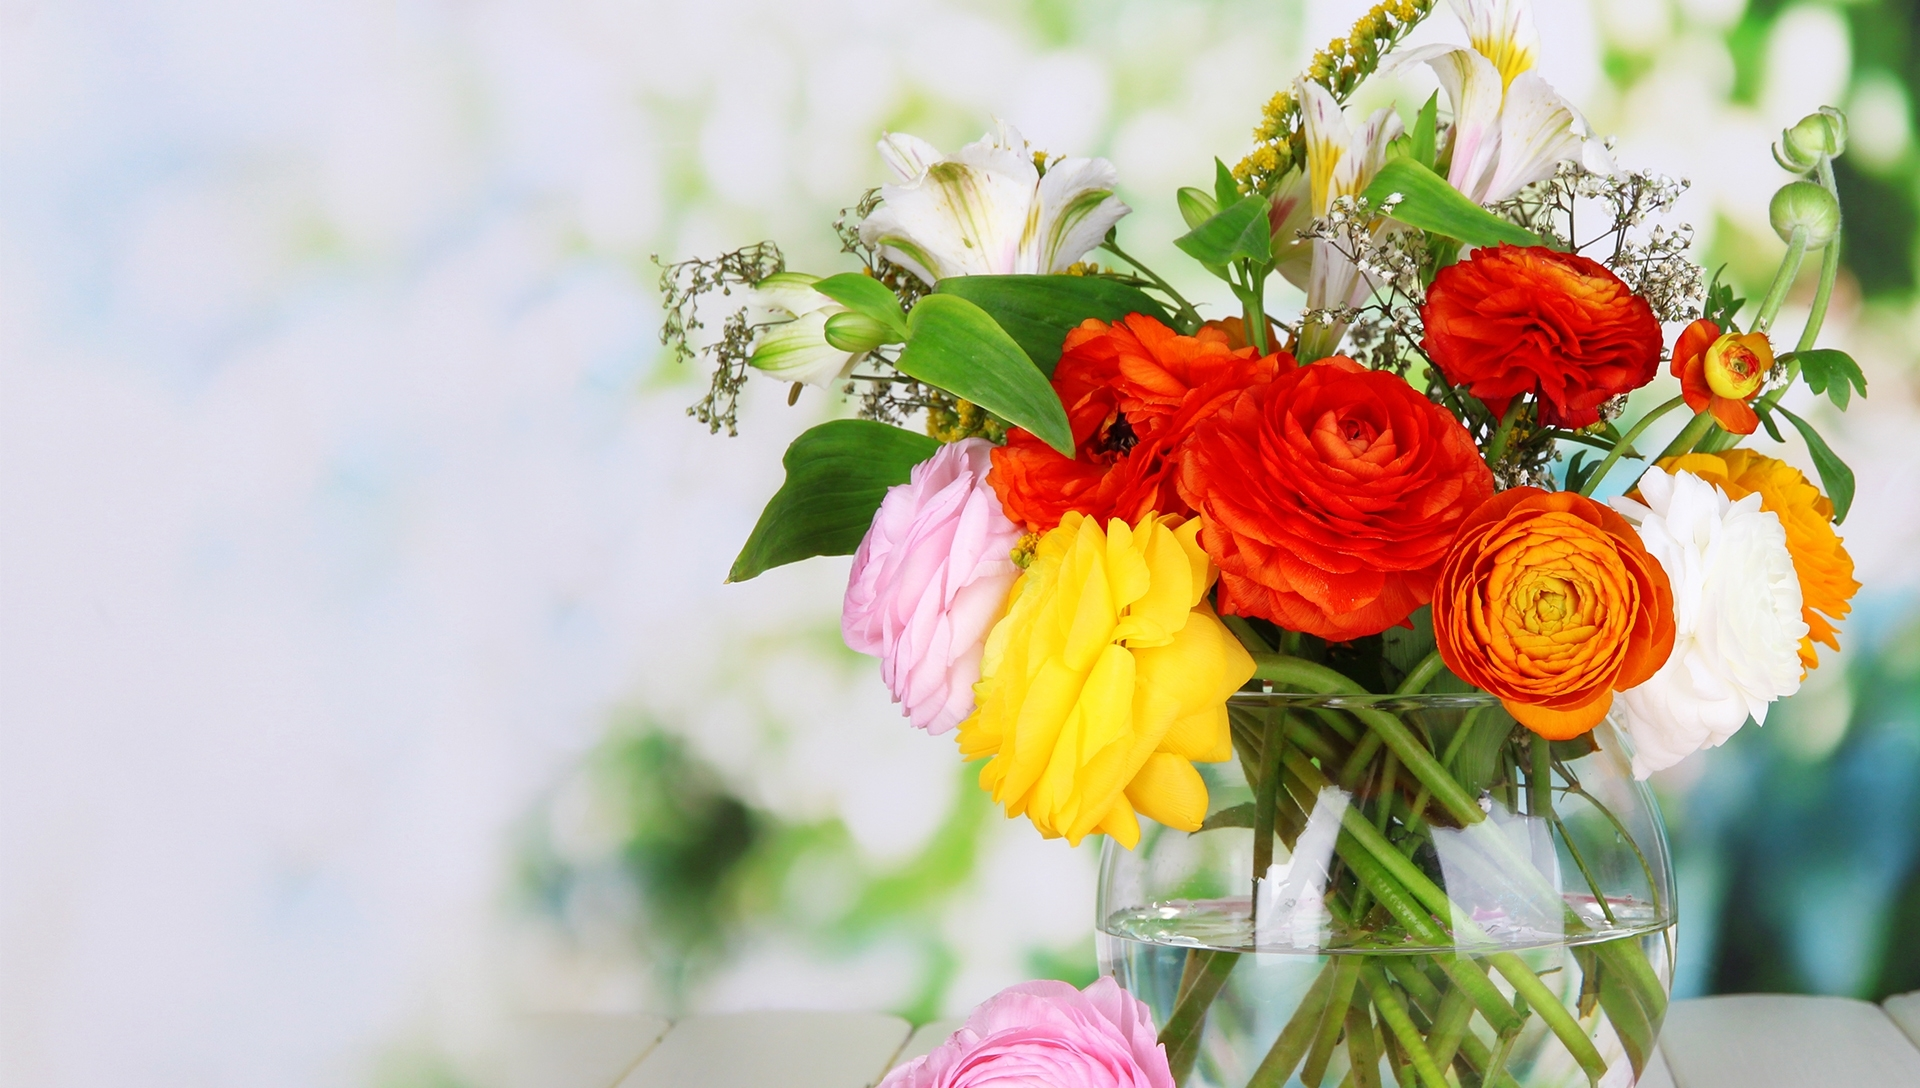 Blackwood Florist | Flower Delivery By Chews Florist within Garden Gate Flowers St Joseph Mo